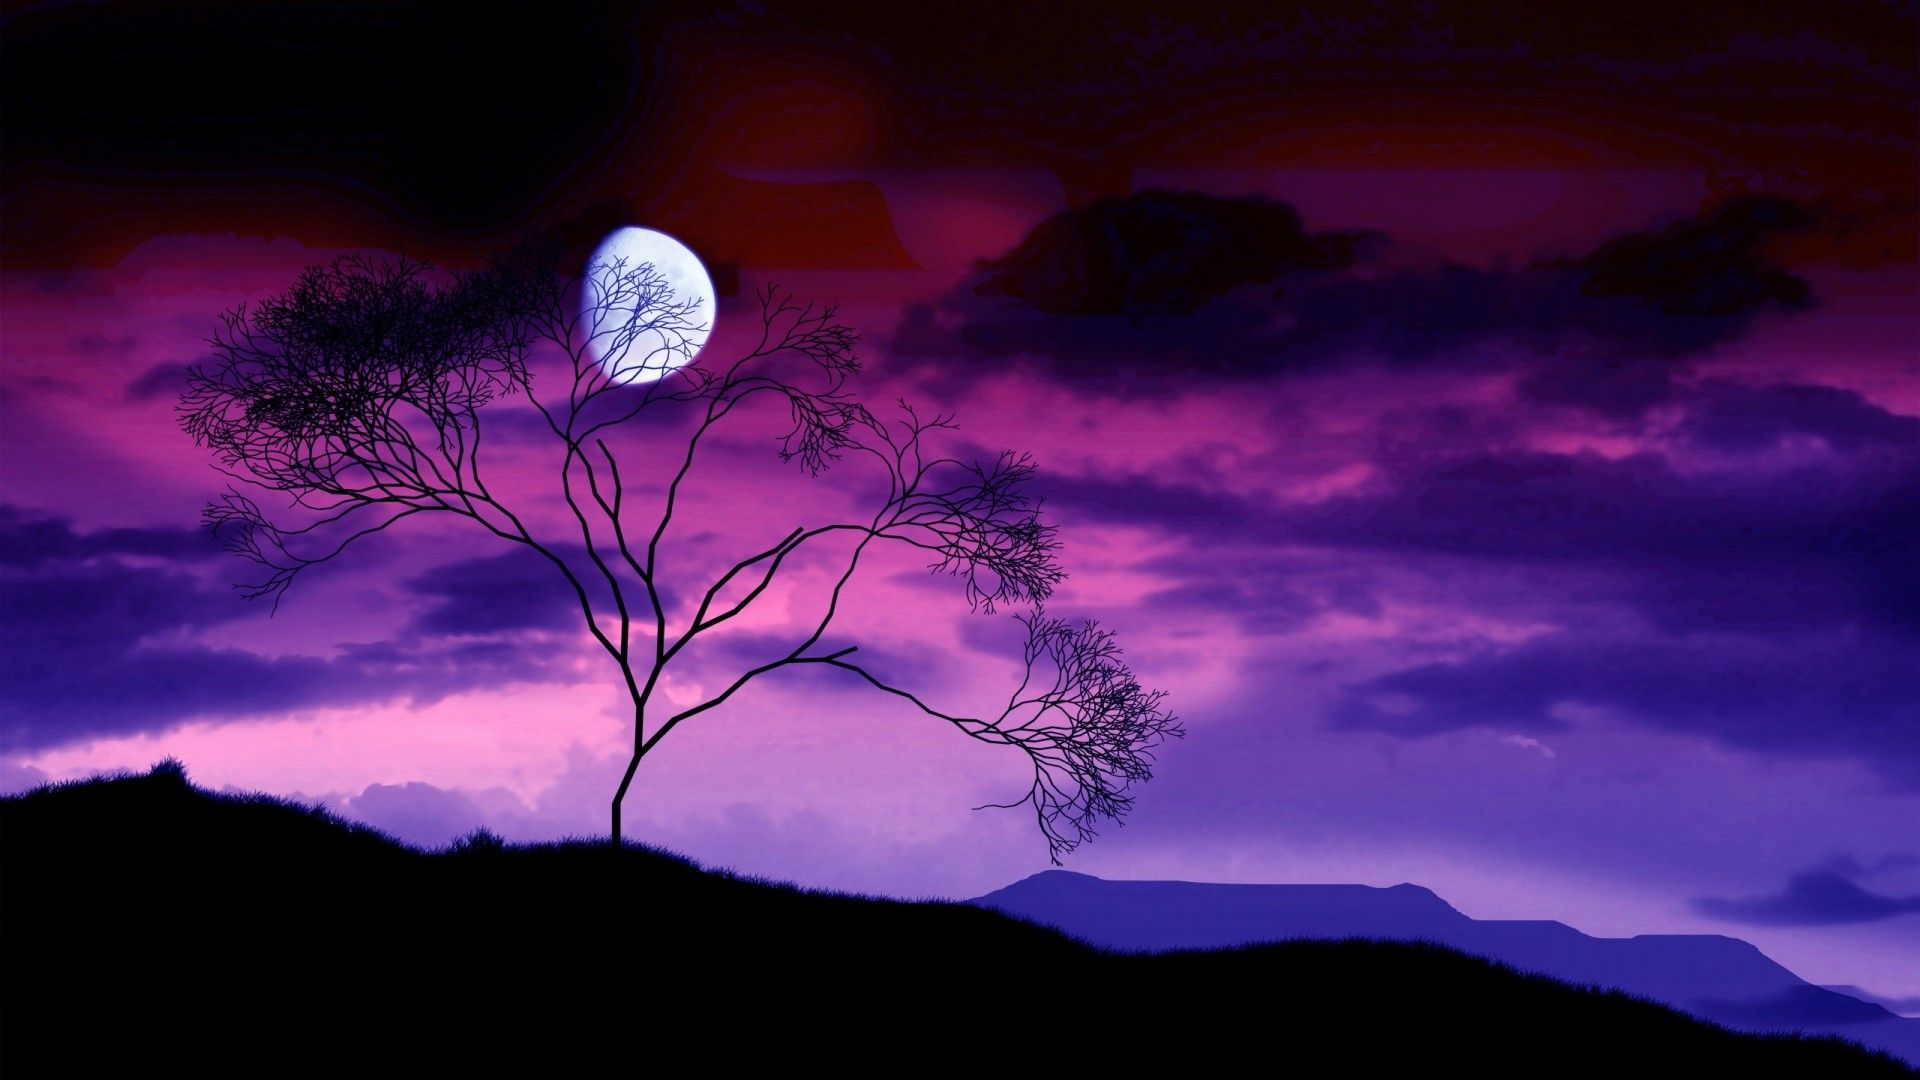 Beautiful Night Time Scary Night Sky Or Romantic Or Fantasy Moon Night Pink Violet Purple Beautiful Night Sky Landscape Pictures Beautiful Moon